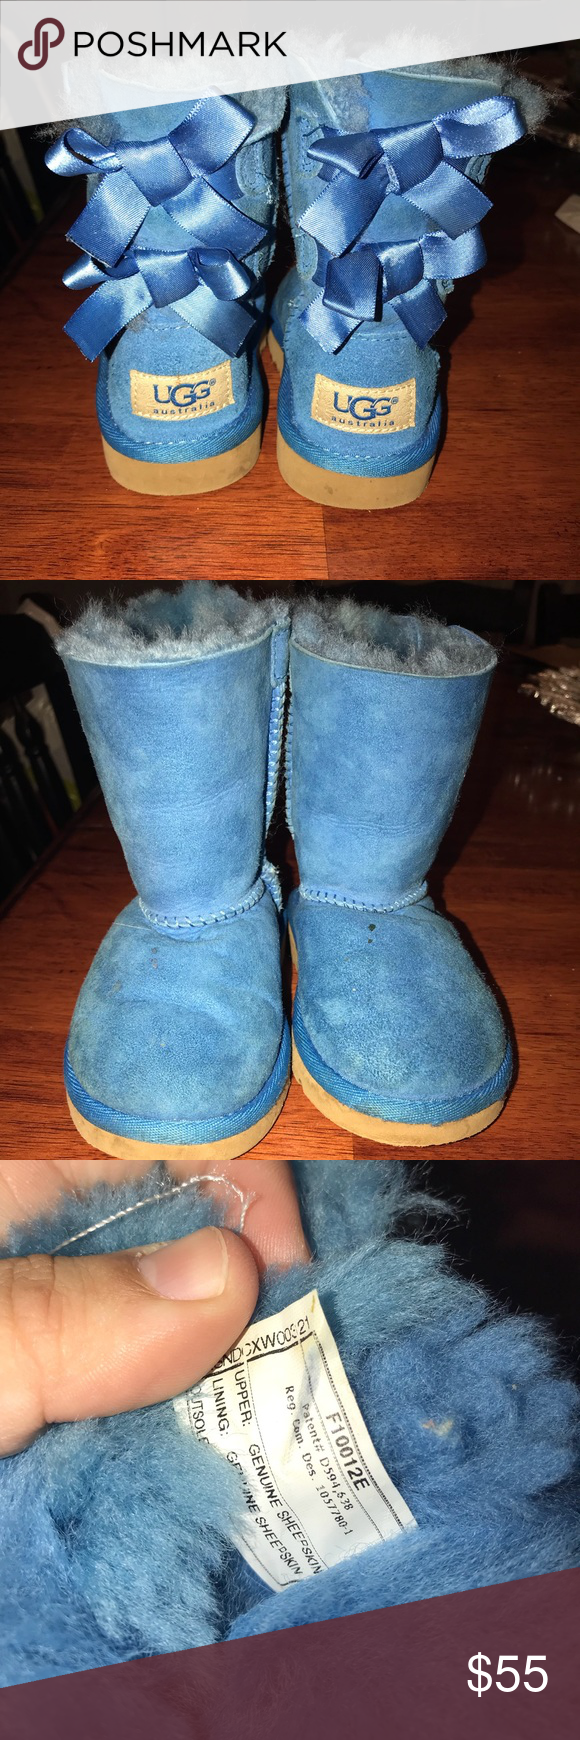 Girls Bailey Bow Blue Uggs Size 7 US children's Ugg boots with adorable bows. Slight wear and a few small stains on front top of boots, see pictures.